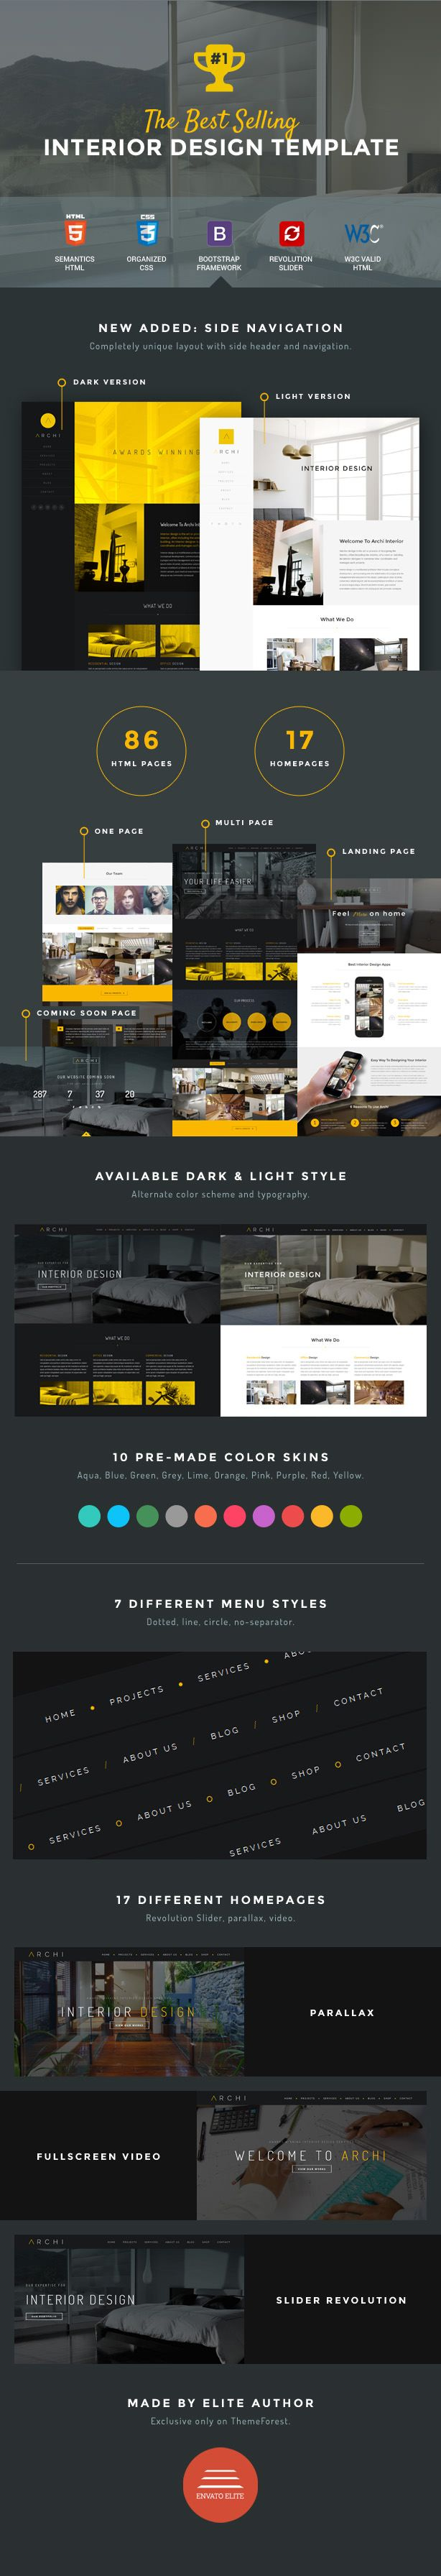 48 best Architecture Web Templates images on Pinterest | Website ...